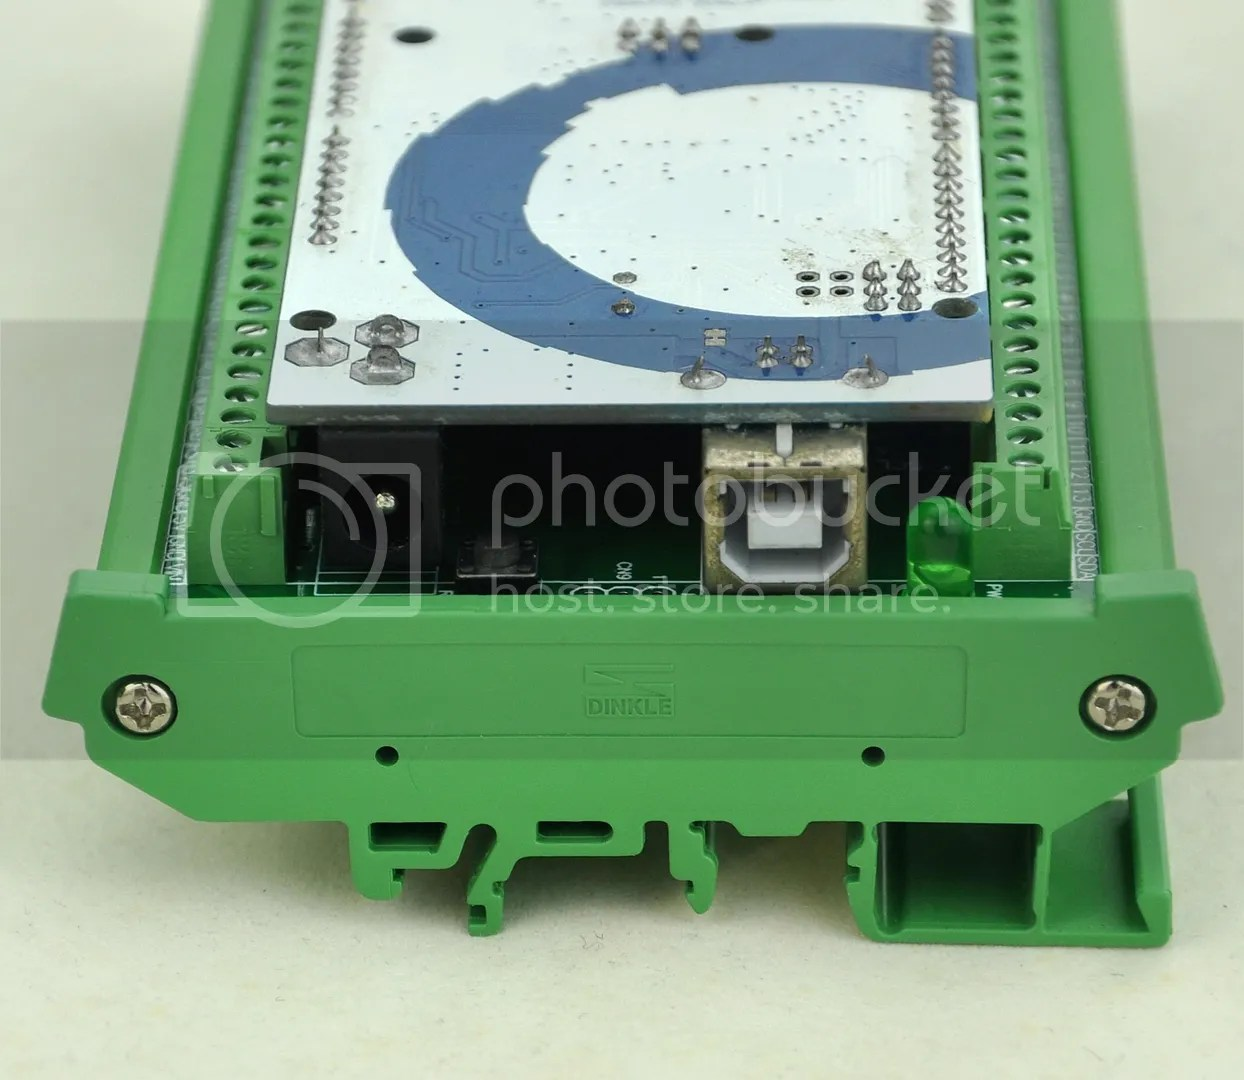 dsc 1550 wiring diagram electrical outlet switch din rail mount screw terminal block adapter module for